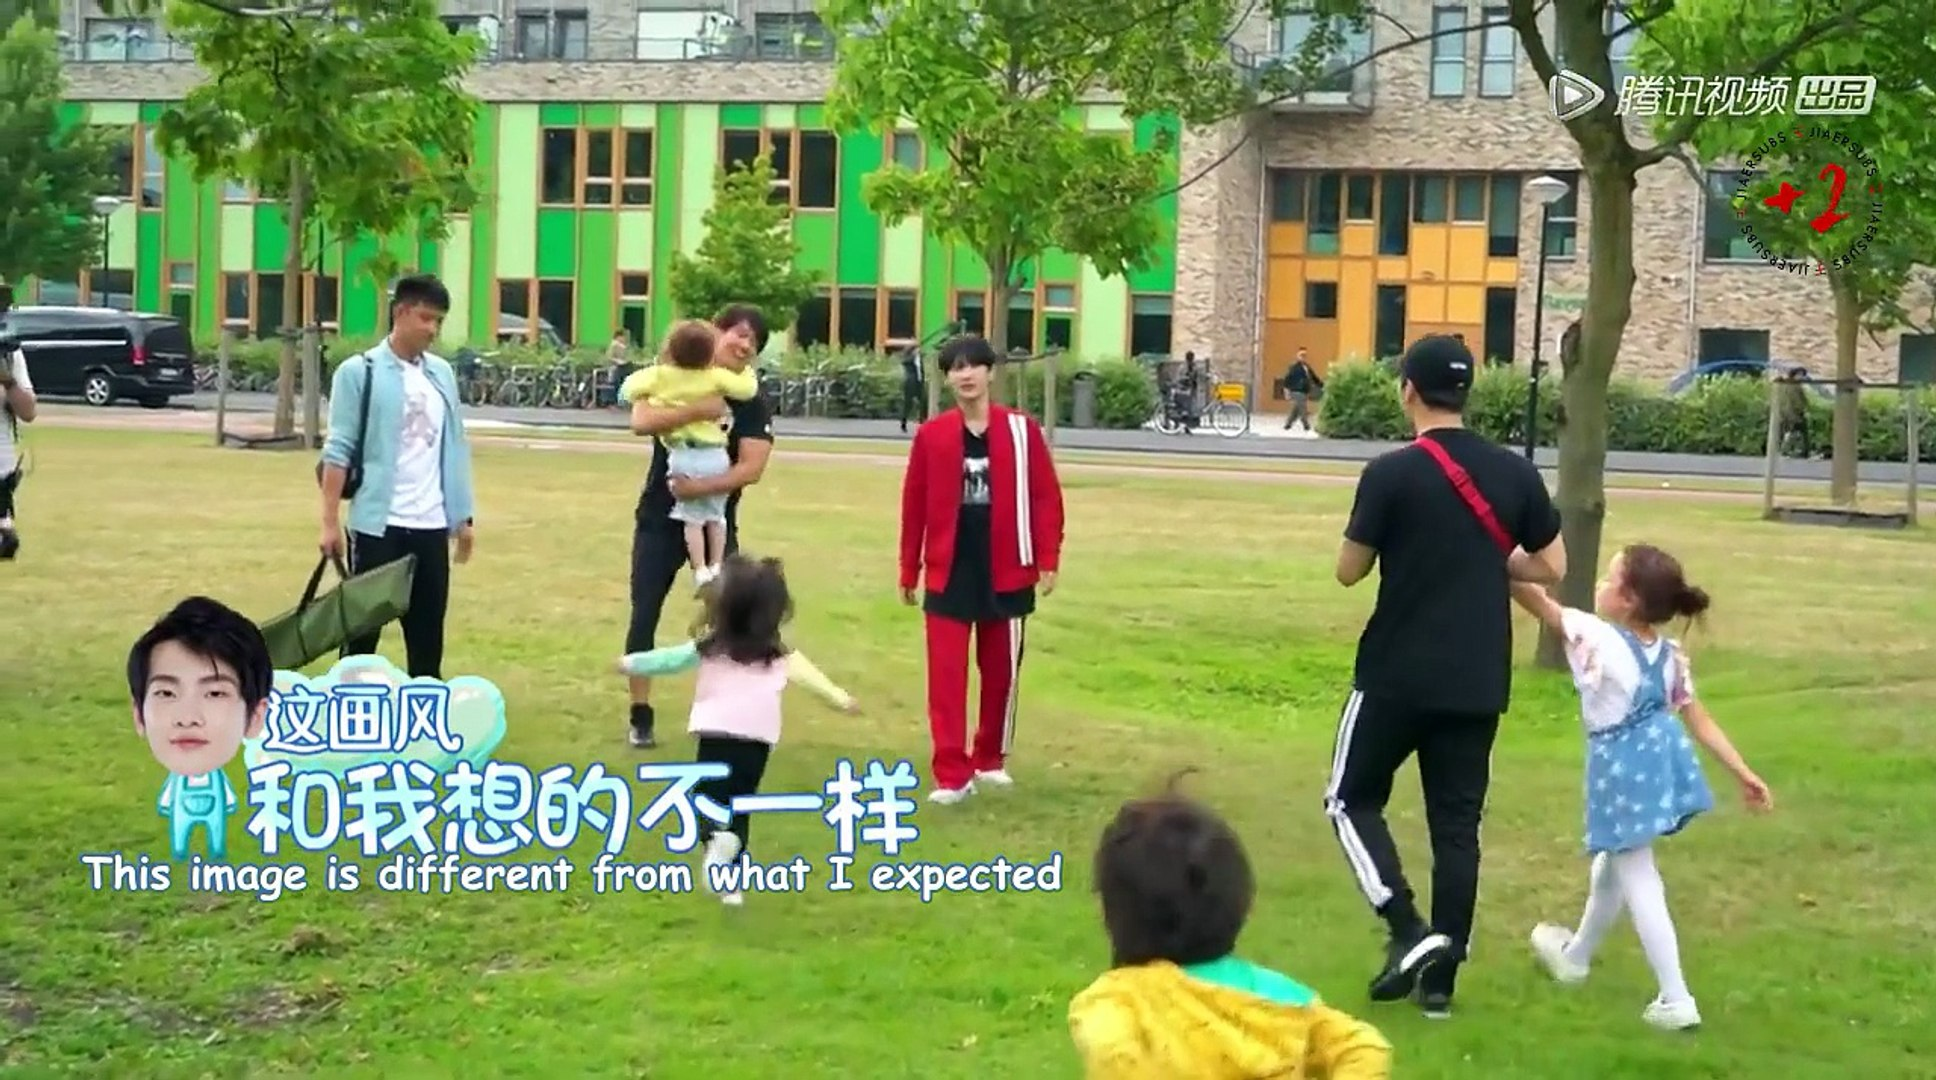 [EngSub] Let Go of My Baby S03 Ep12 Part 1/3 Jackson Wang